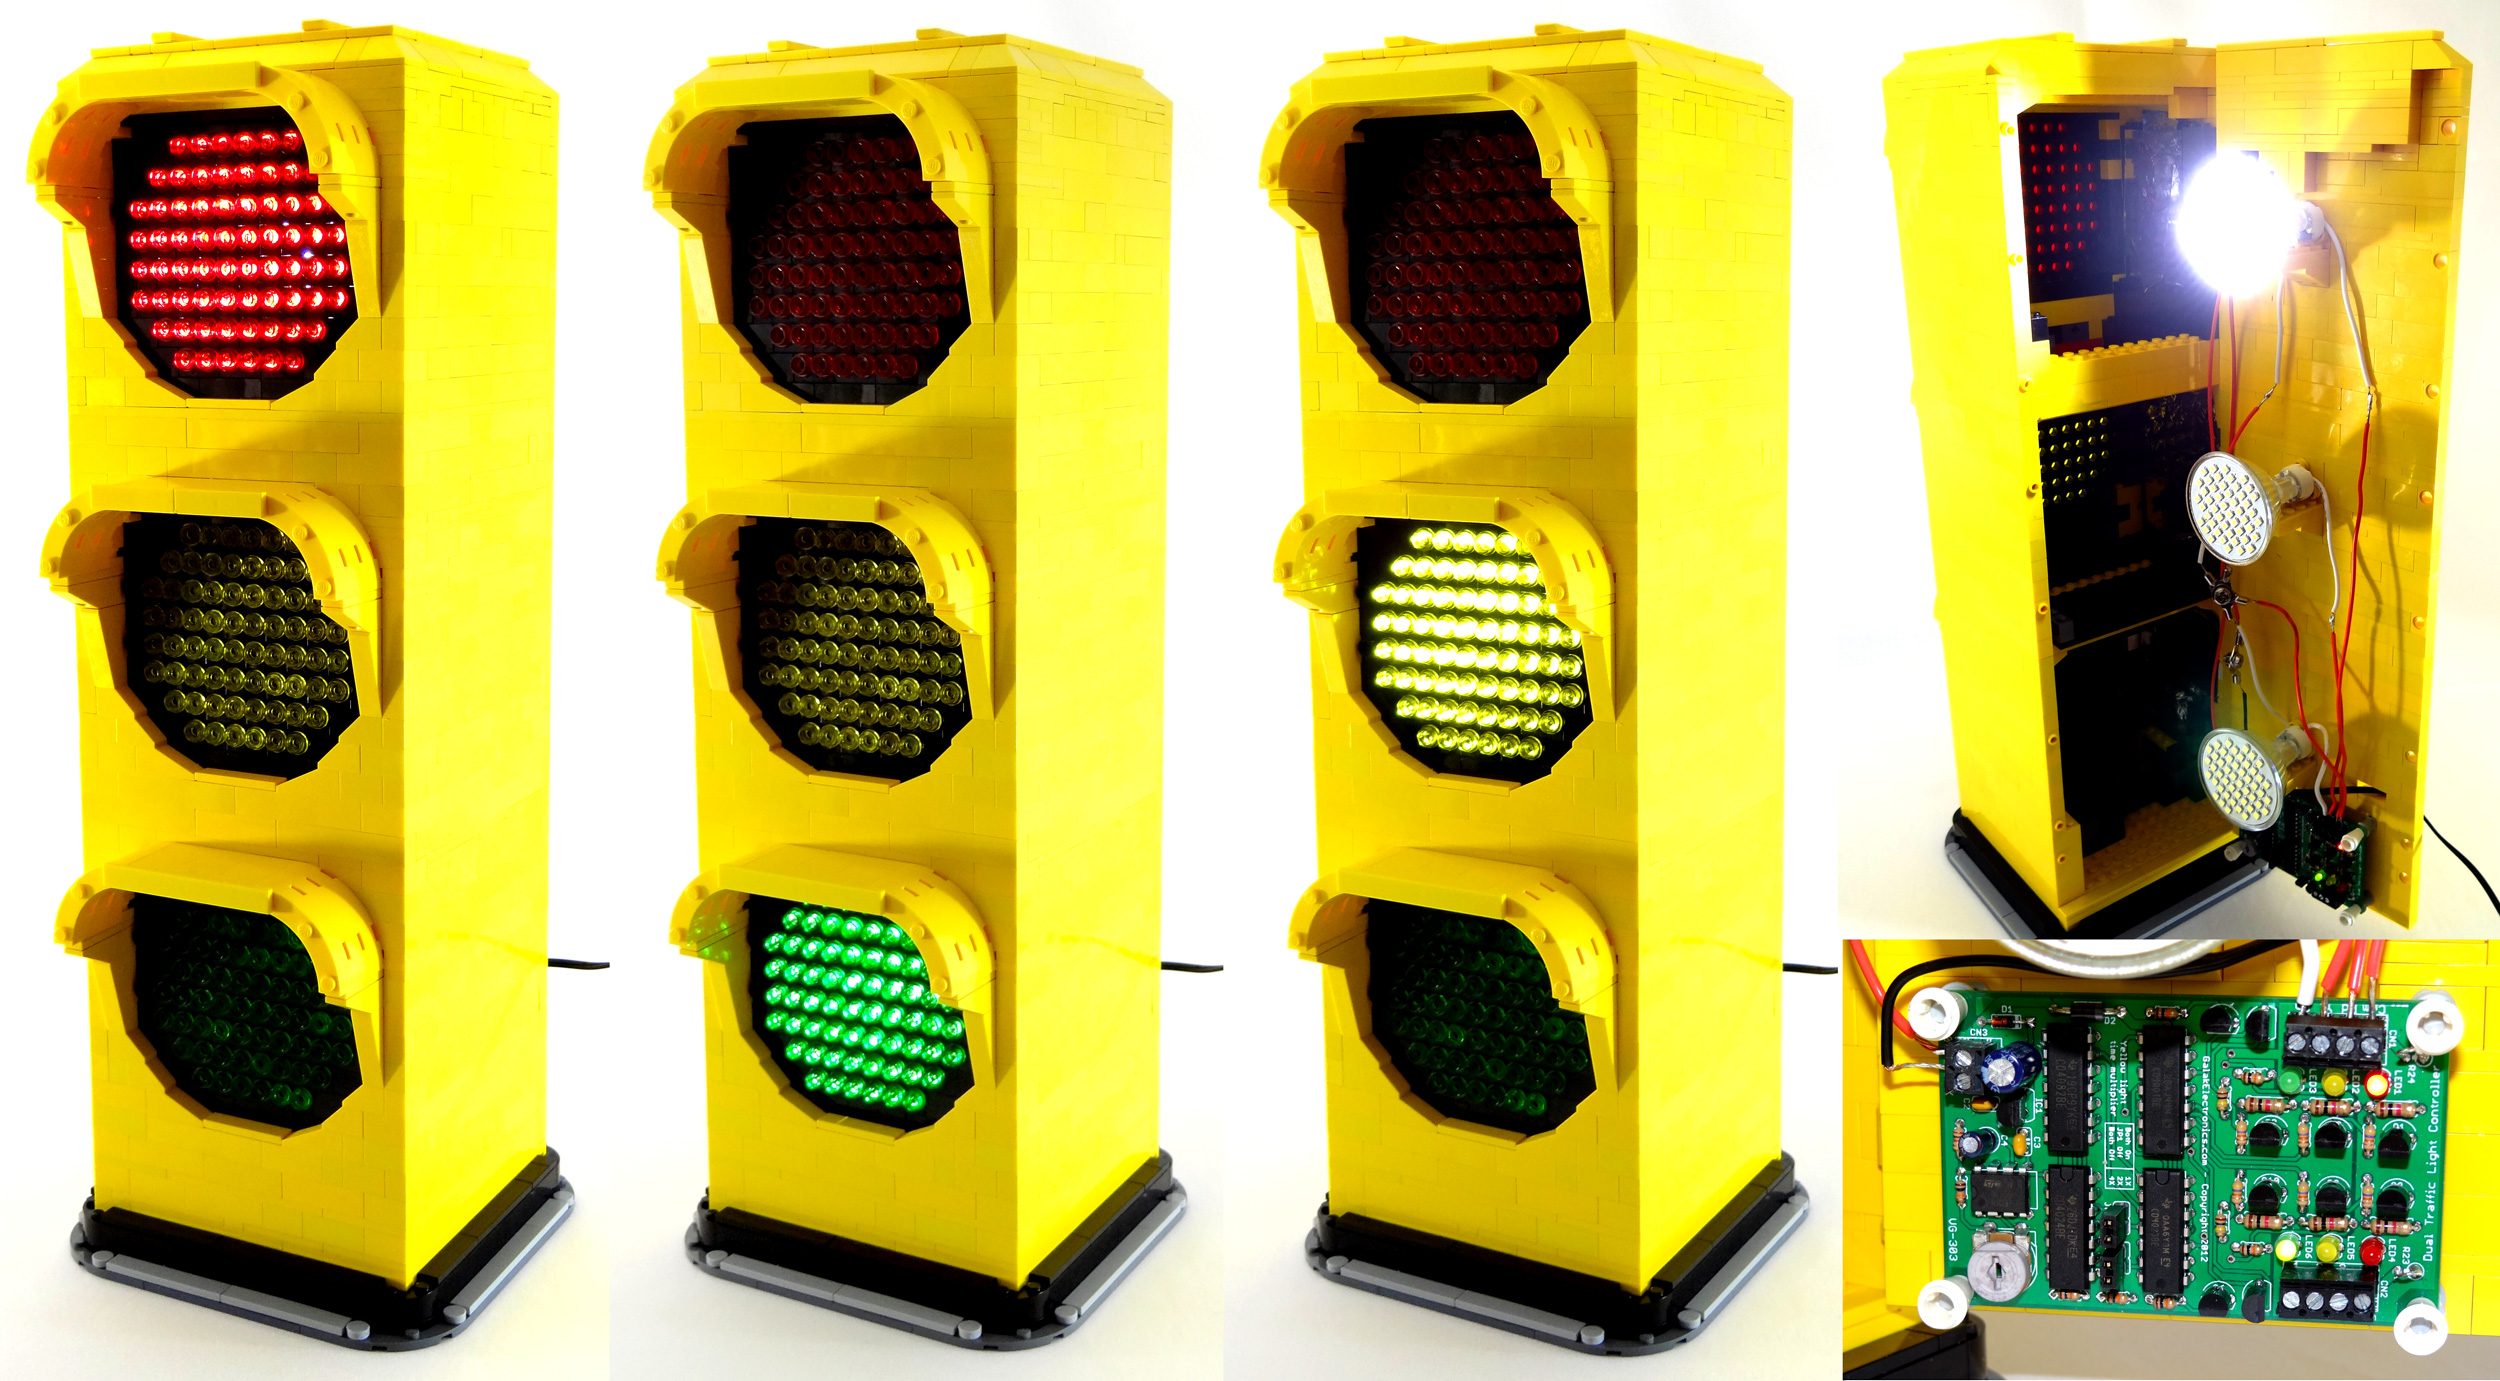 ... Fully Functional LEGO Traffic Signal Lamp By VonBrunk